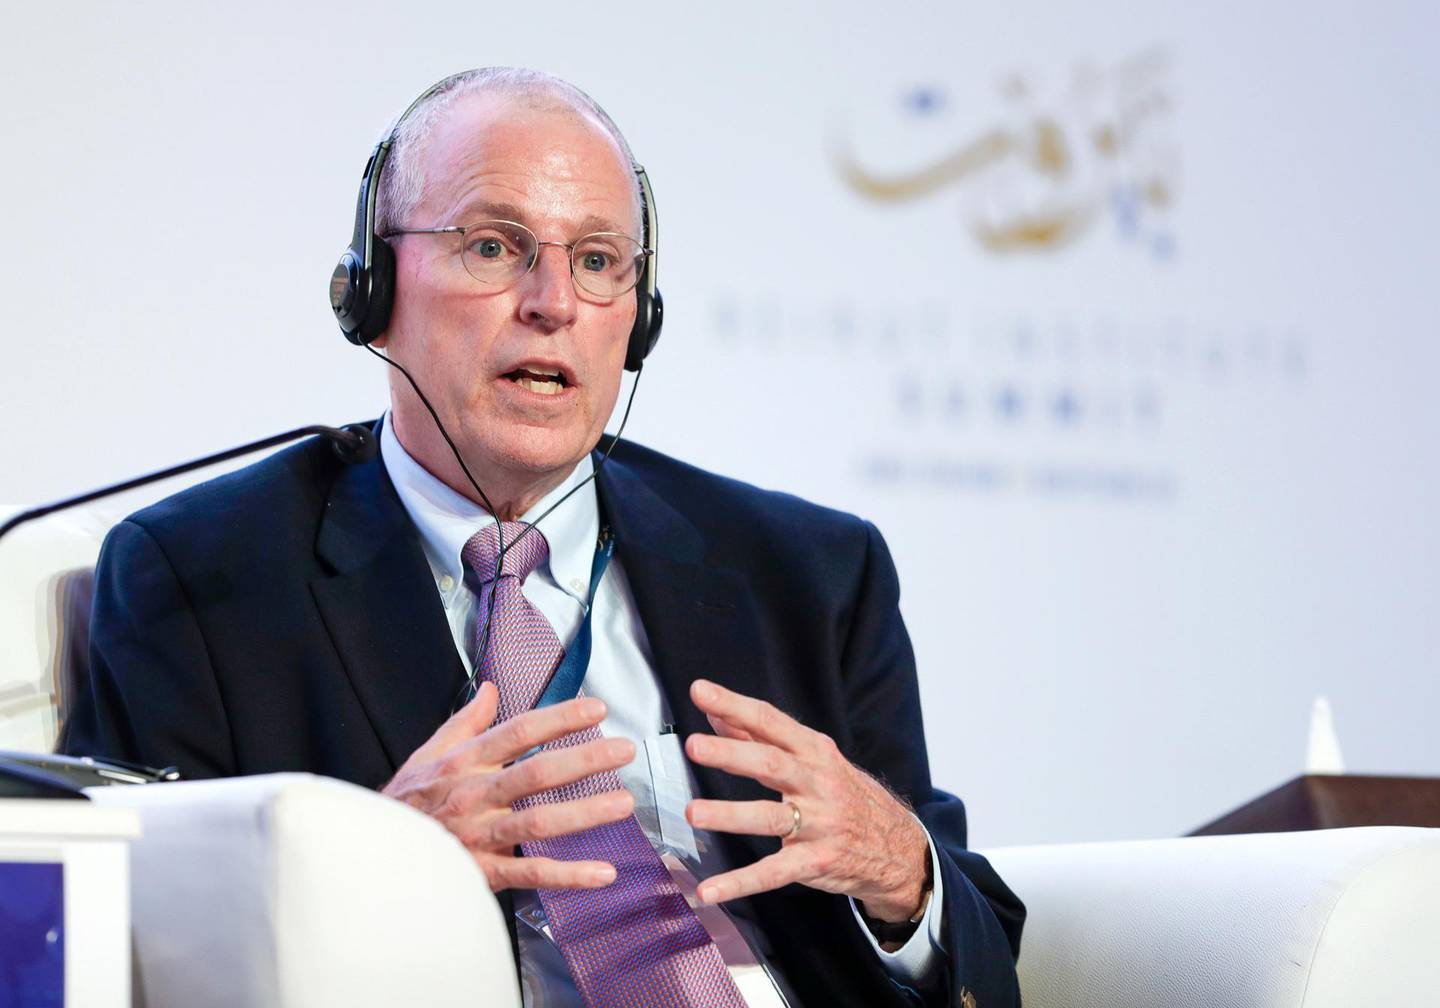 Abu Dhabi, United Arab Emirates, October 14, 2019.   Beirut Institute Summit at The St. Regis Abu Dhabi - Corniche. --     Dealing with Conflicts: the Importance of the Human Infrastructure:--Ambassador Robert Ford , Professor at Yale University Victor Besa / The NationalSection:  NAReporter:  Dan Sanderson